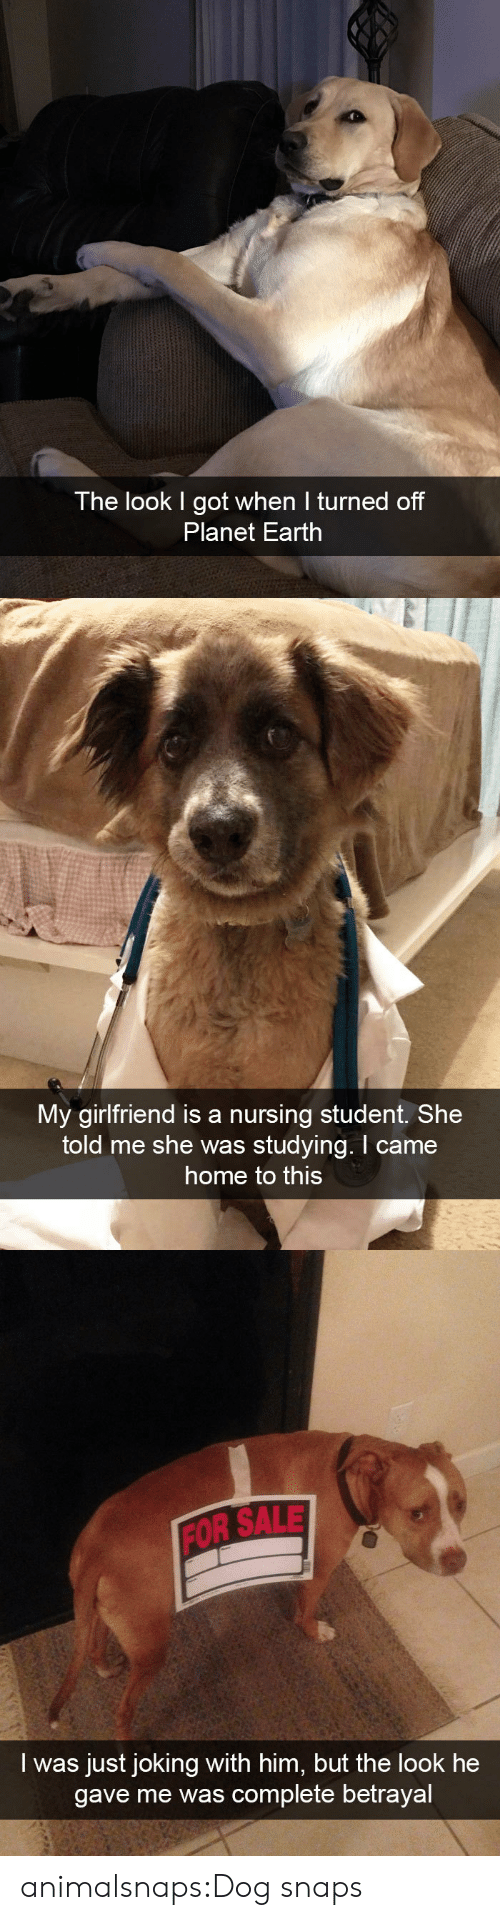 betrayal: The look I got when I turned off  Planet Earth   My girlfriend is a nursing student. She  told me she was studying. I came  home to this   FOR SALE  I was just joking with him, but the look he  gave me was complete betrayal animalsnaps:Dog snaps